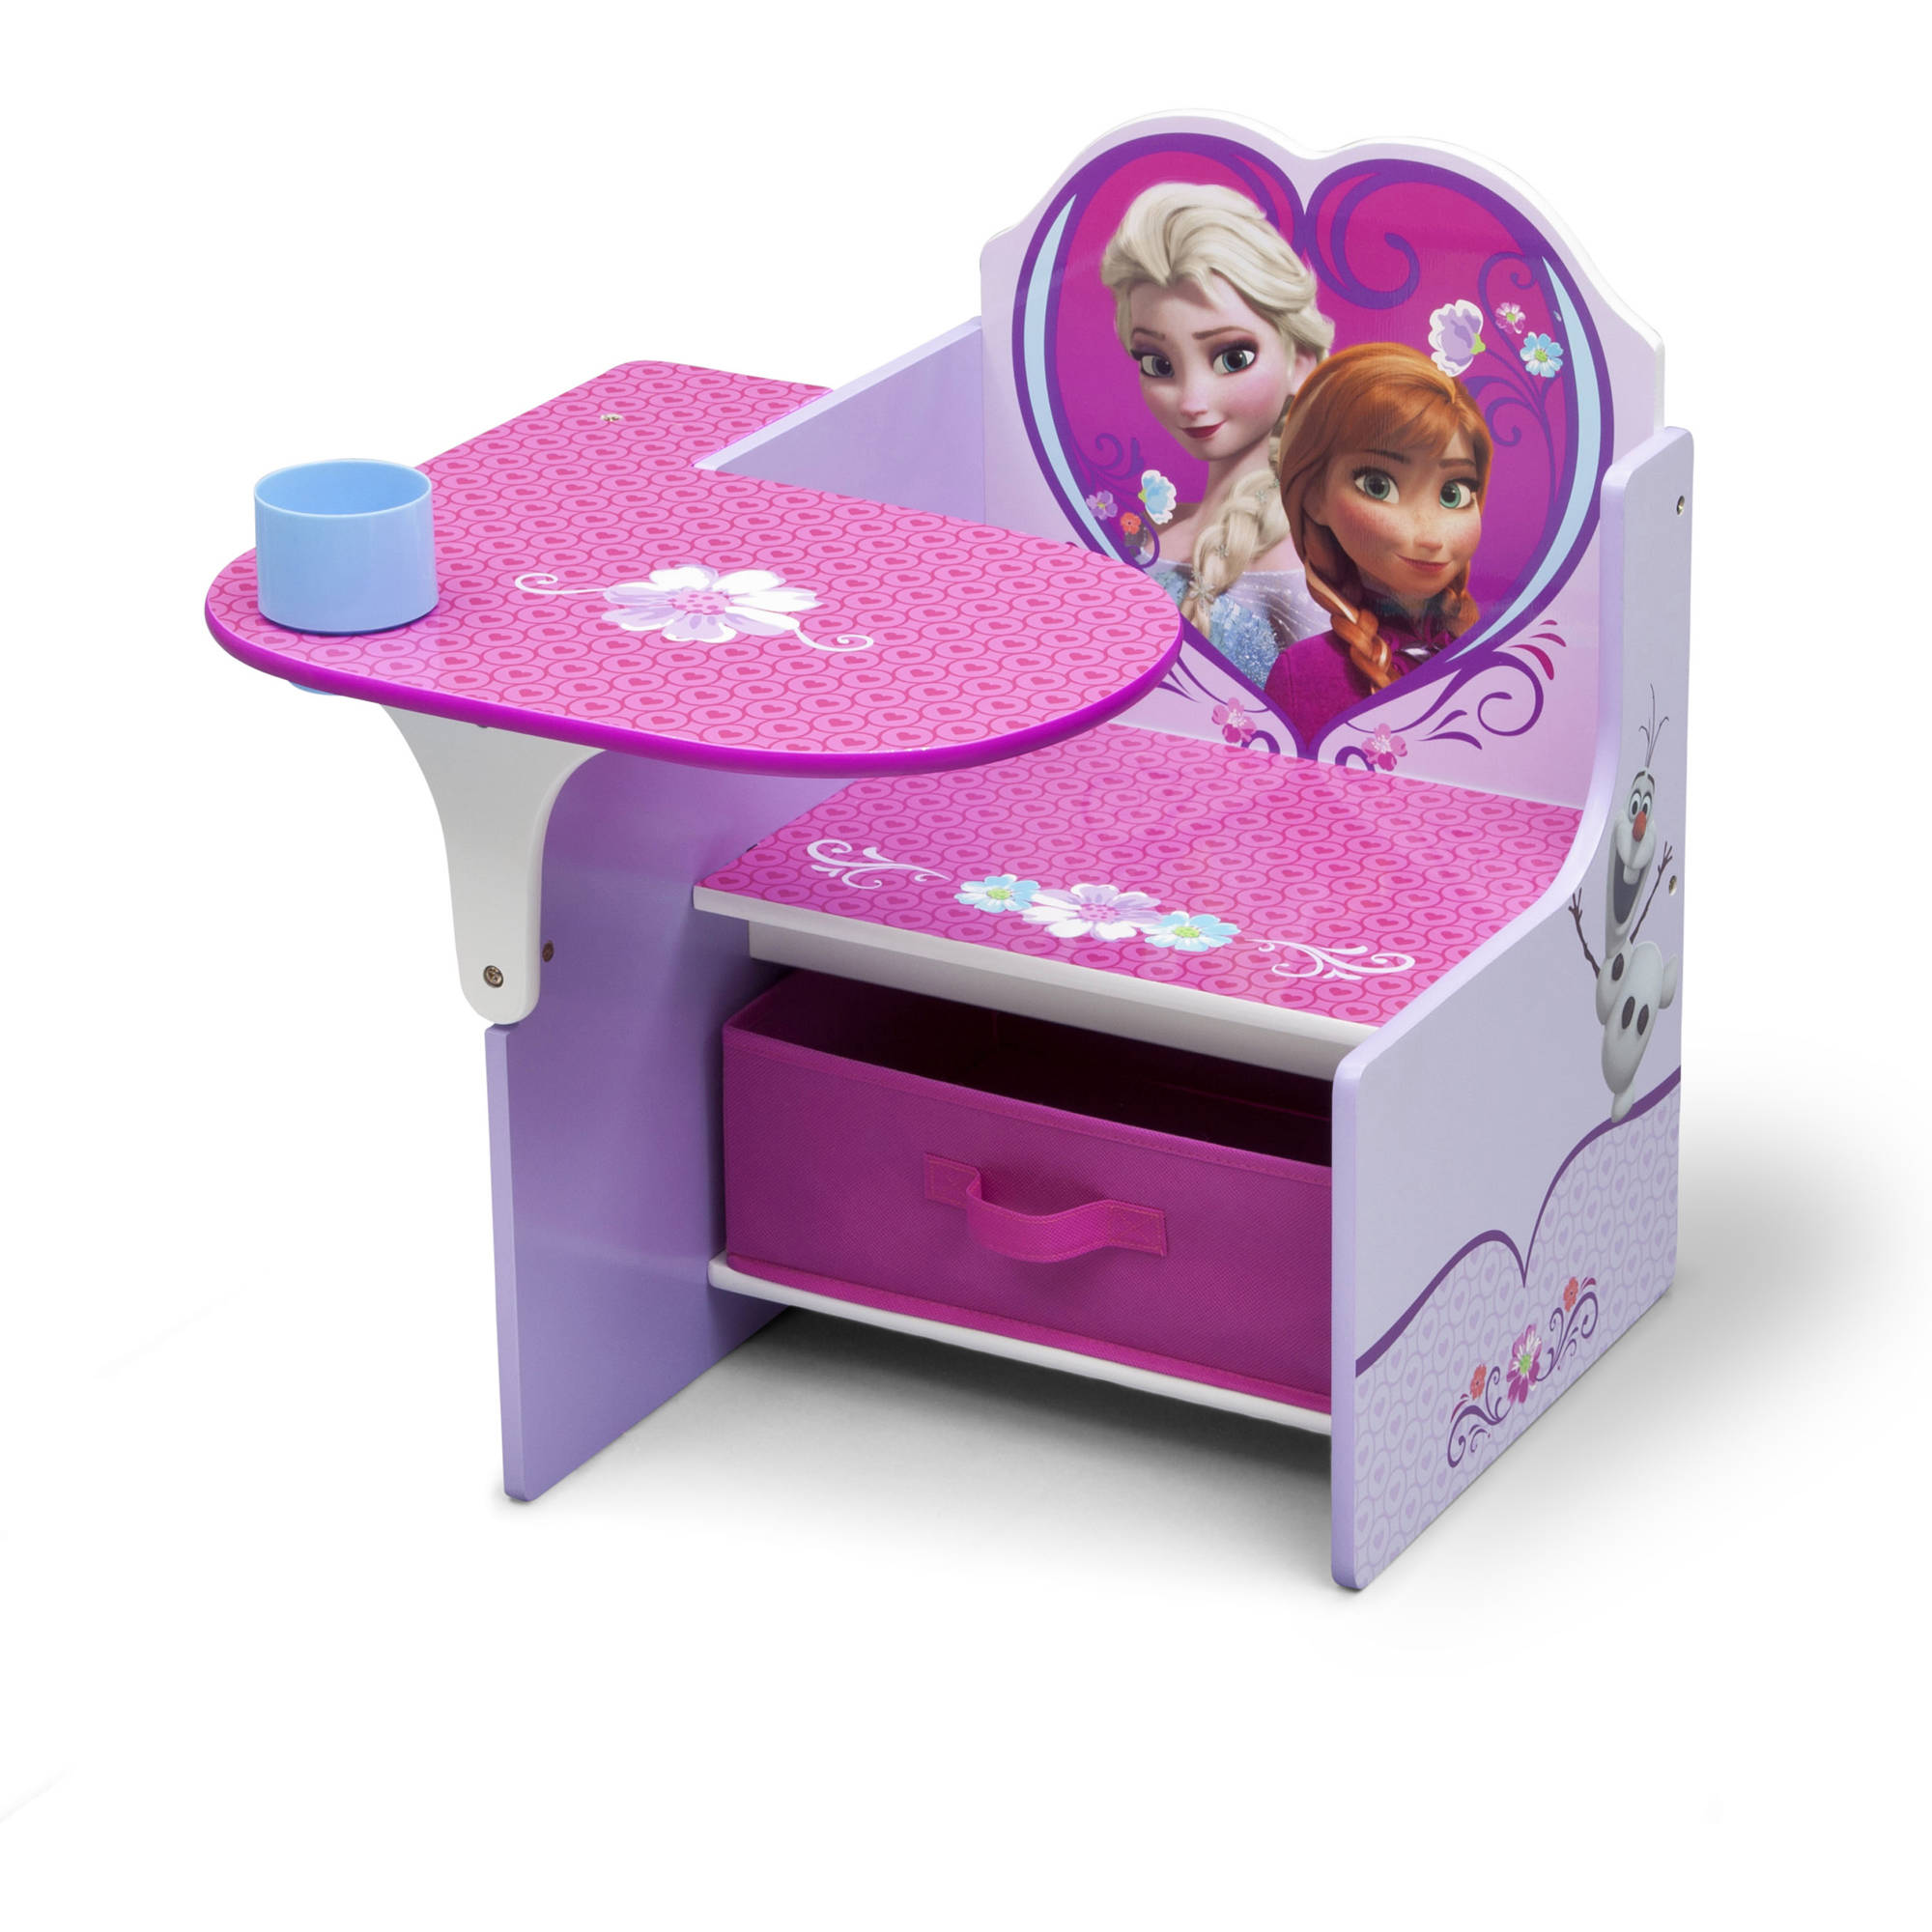 Disney Frozen Toddler Child Chair Desk with Bonus Storage Bin by Delta Children - Walmart.com  sc 1 st  Walmart & Disney Frozen Toddler Child Chair Desk with Bonus Storage Bin by ...